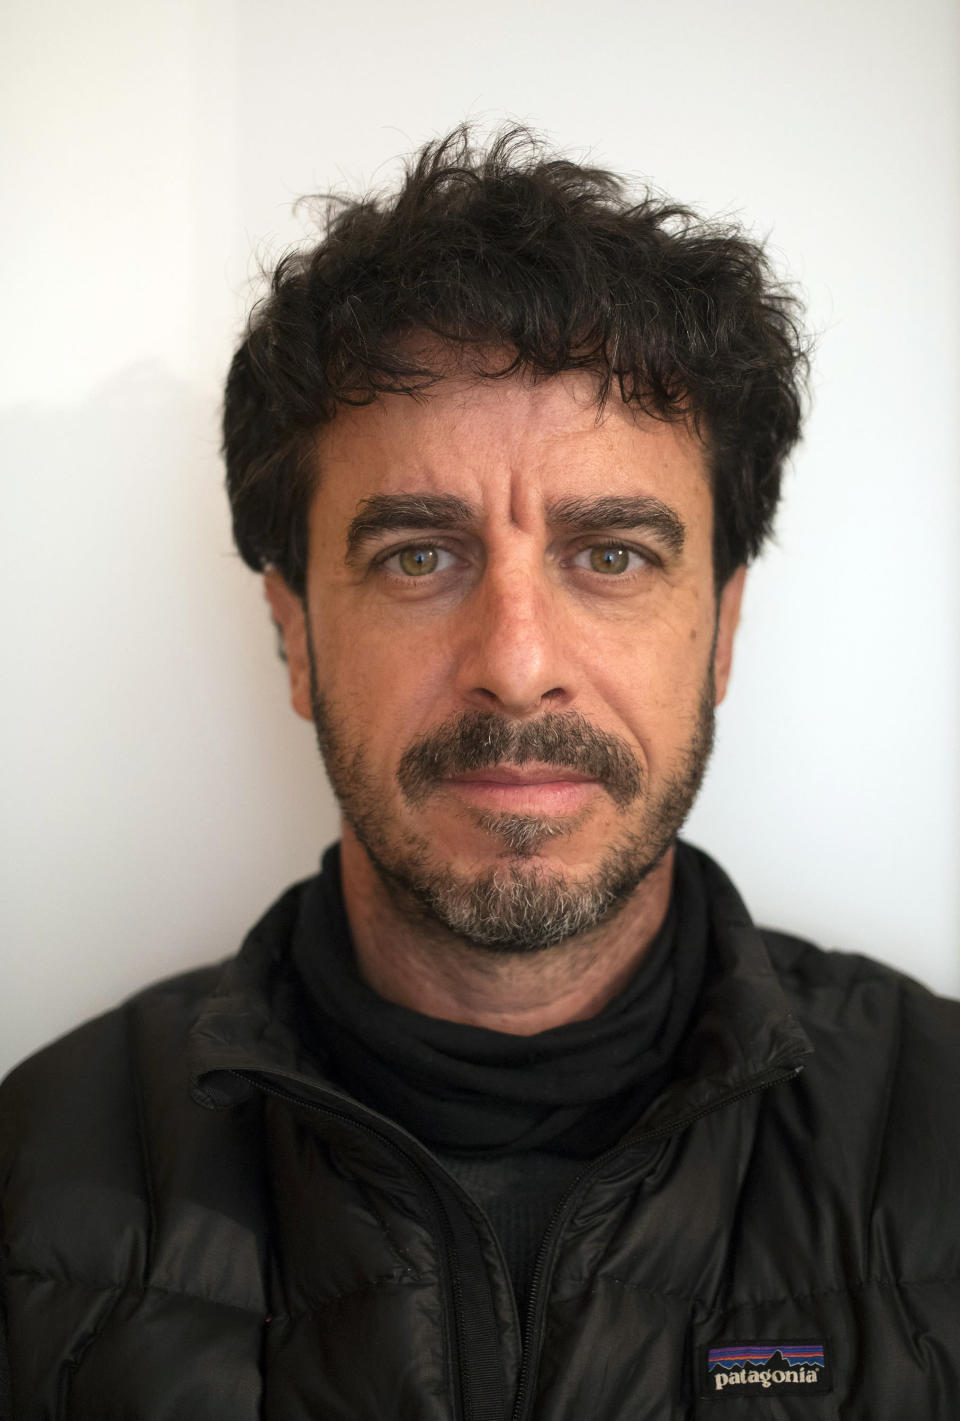 This undated photo shows Associated Press staff photographer Emilio Morenatti. Morenatti won the 2021 Pulitzer Prize for feature photography for a series of images on the COVID-19 pandemic and its toll on the elderly in Spain. (AP Photo)